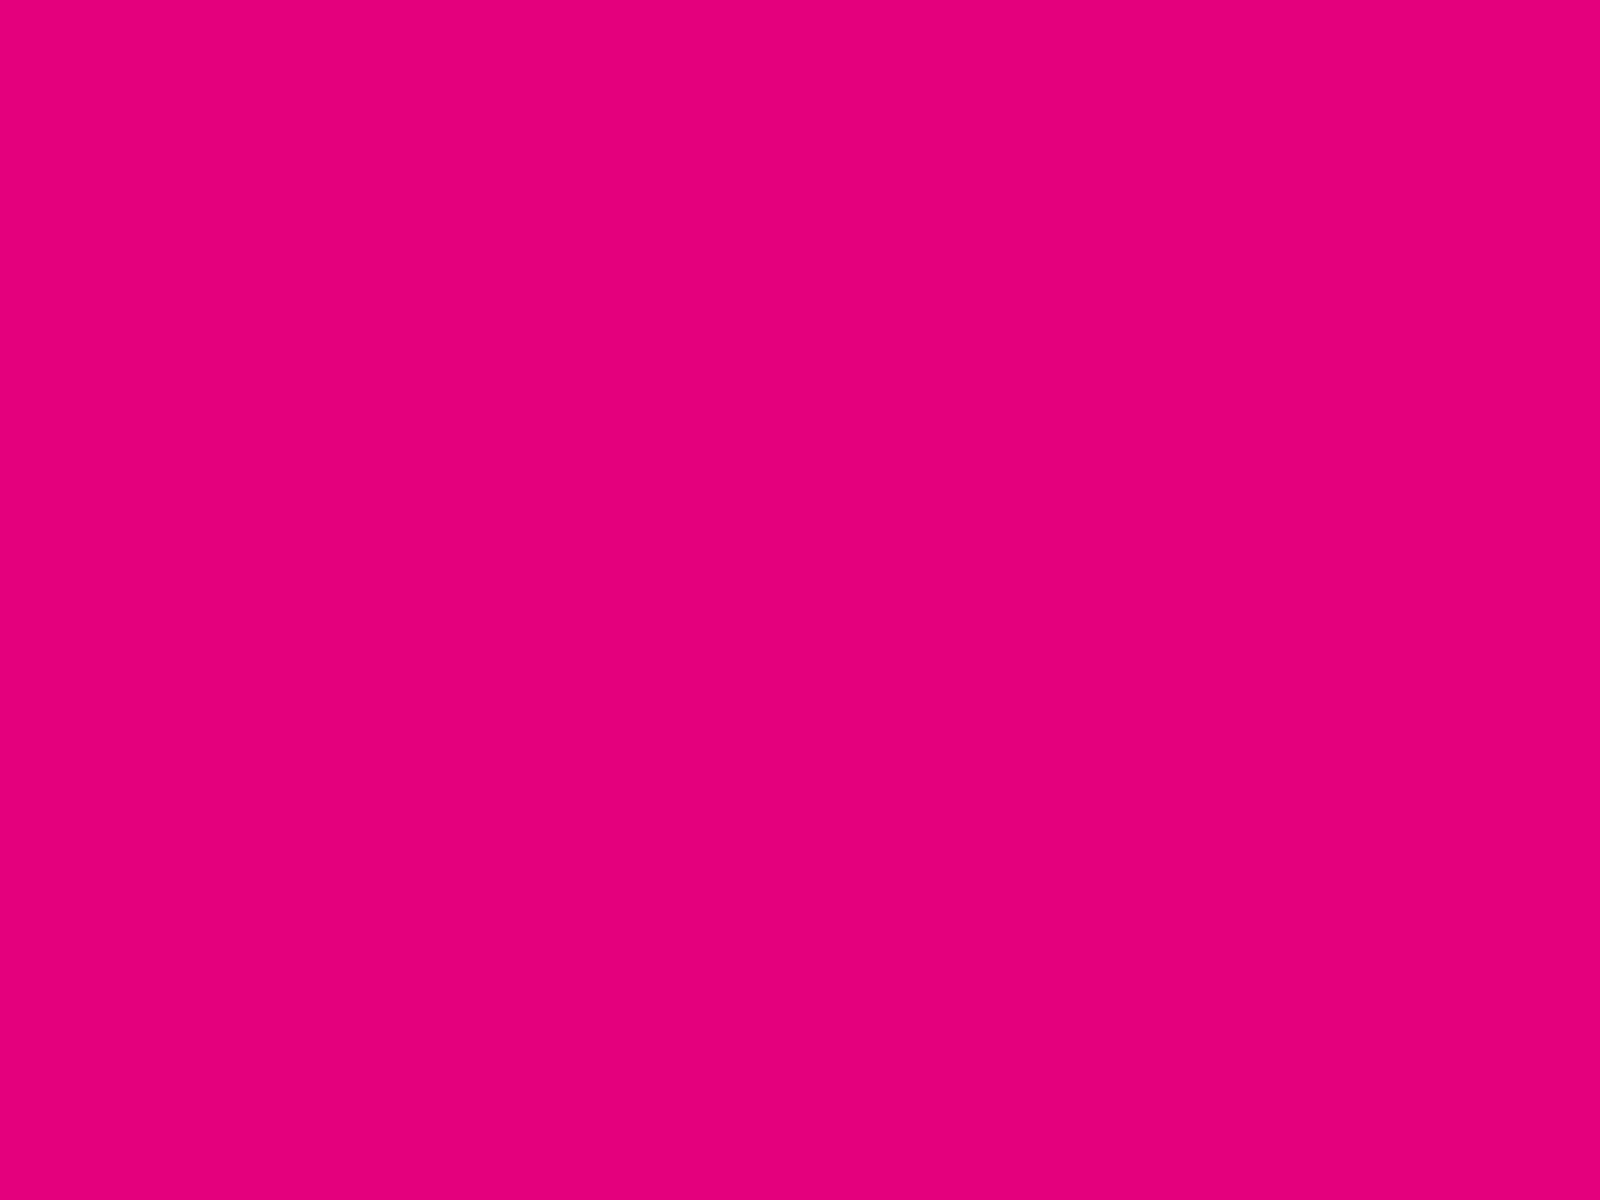 1600x1200 Mexican Pink Solid Color Background